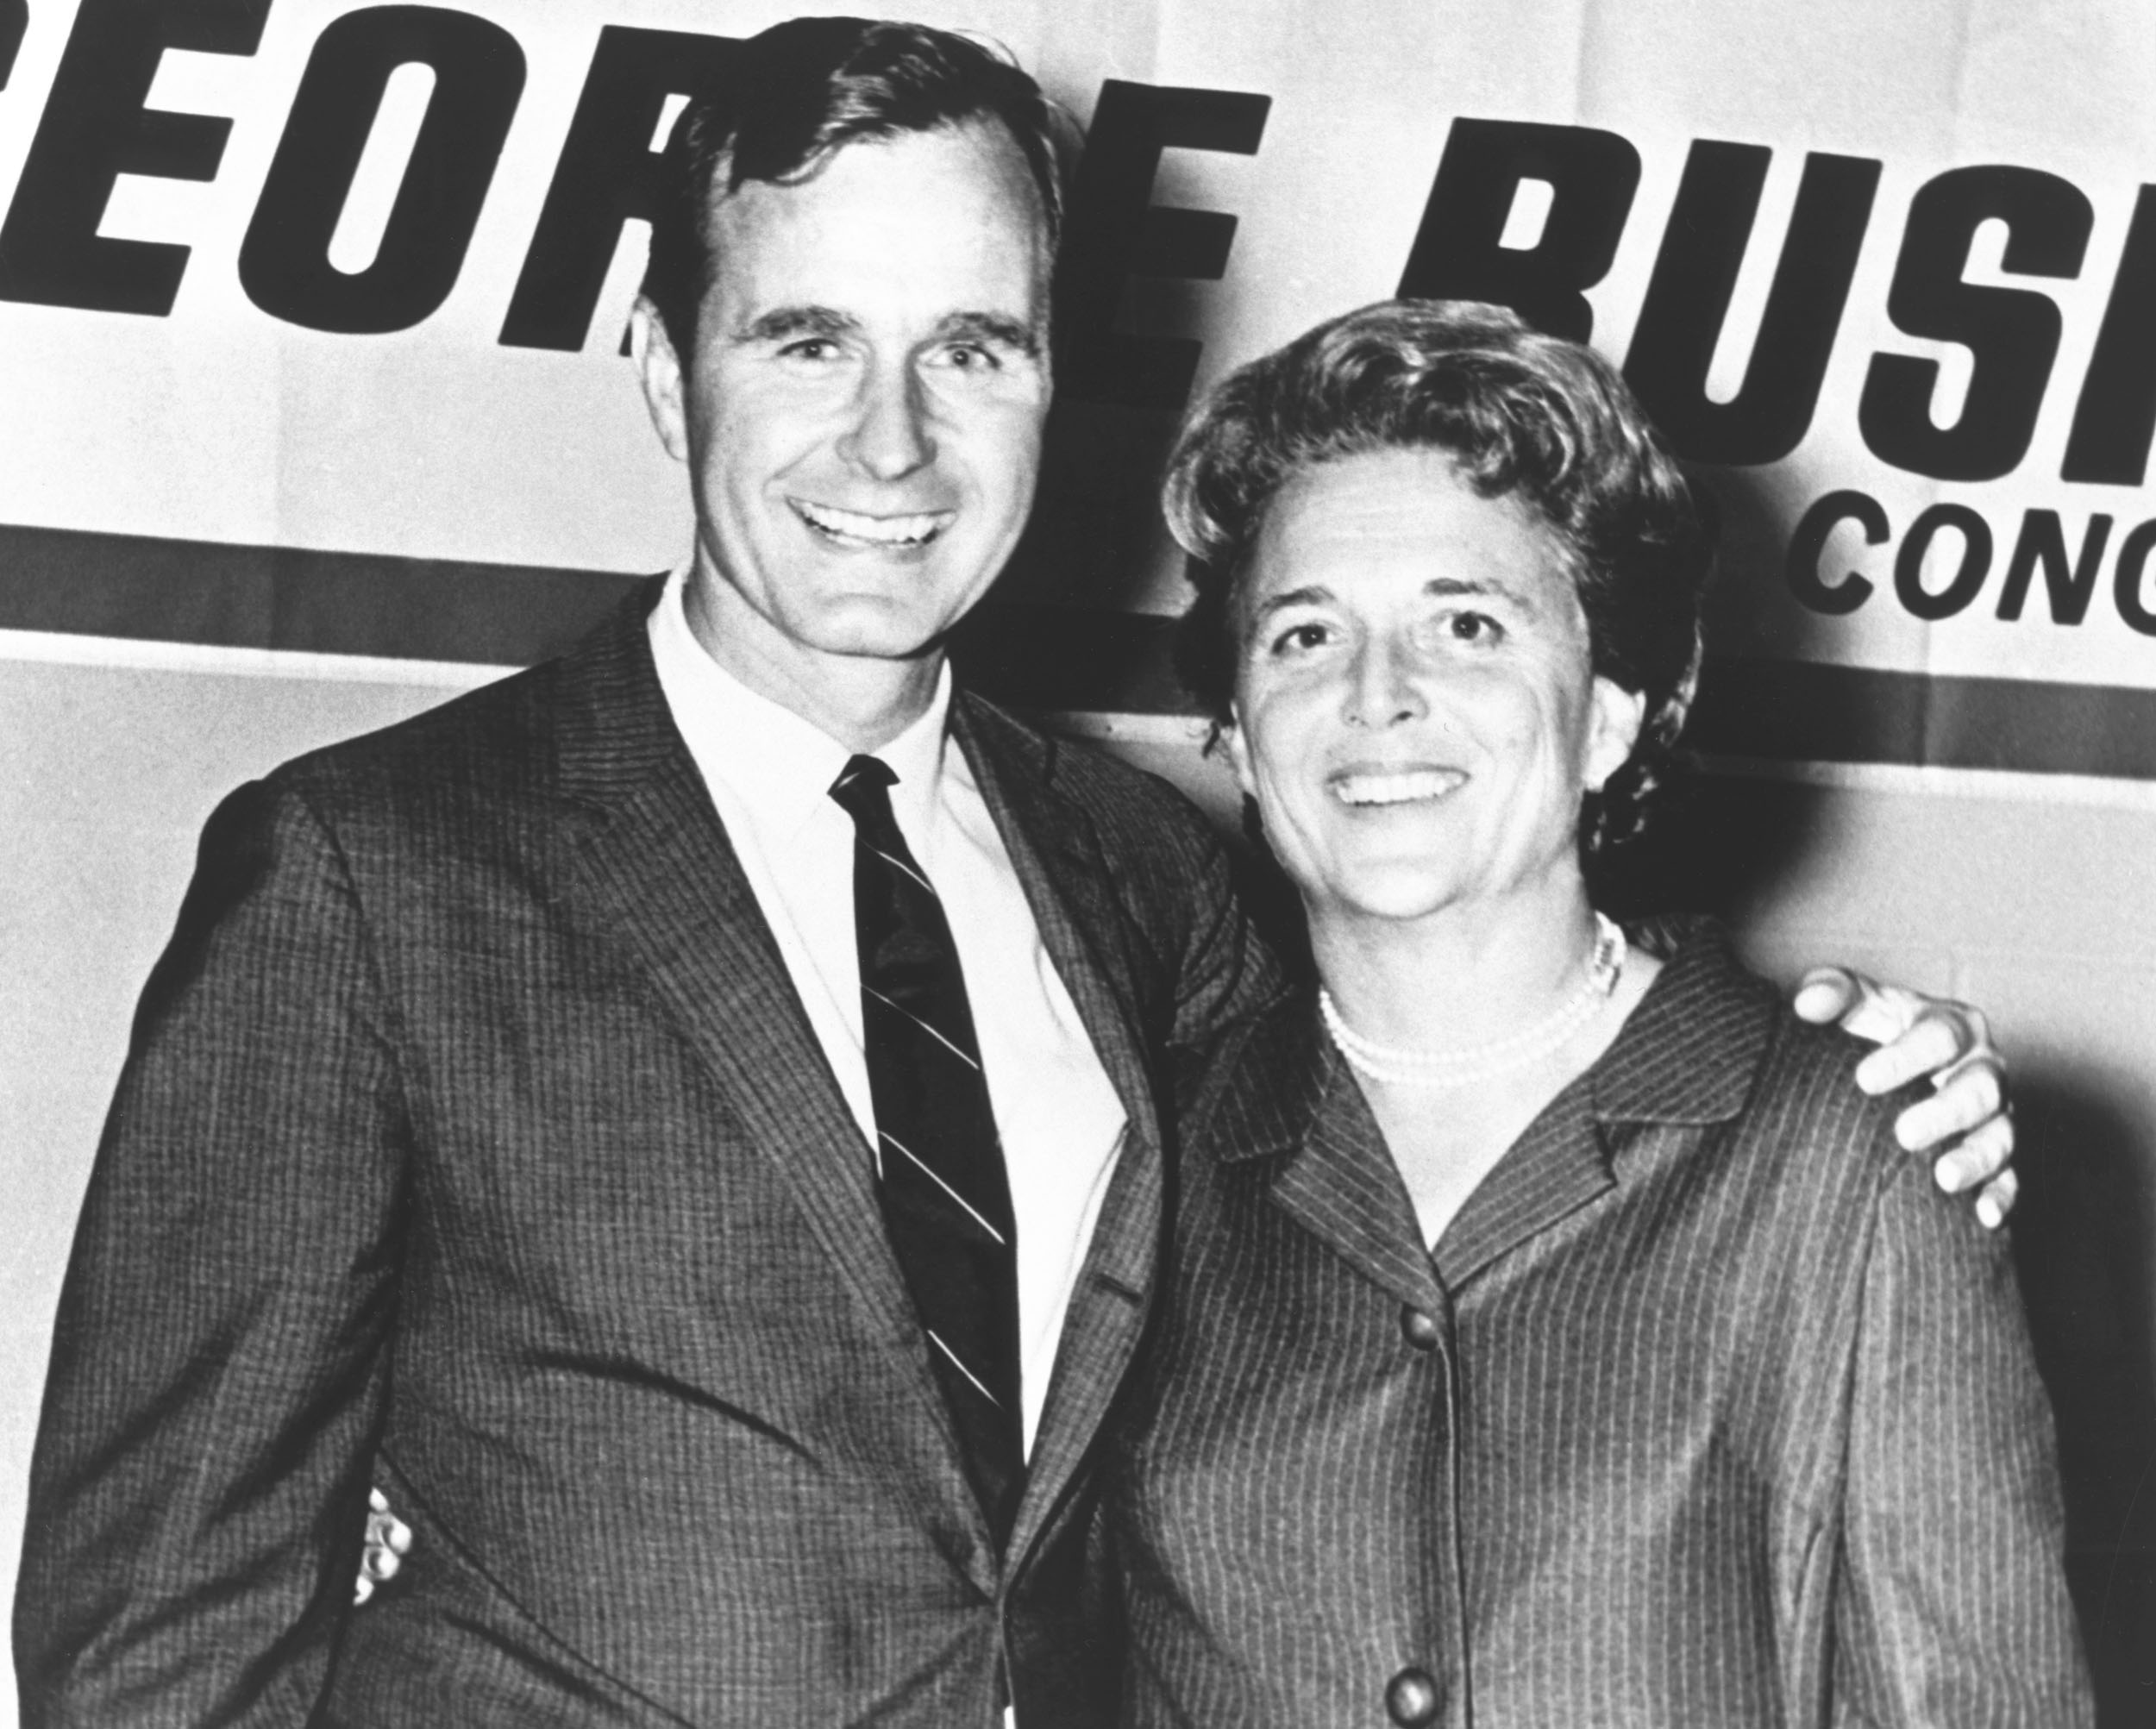 George Herbert Walker Bush poses with his wife Barbara during his campaign for Congress in the 1960s.